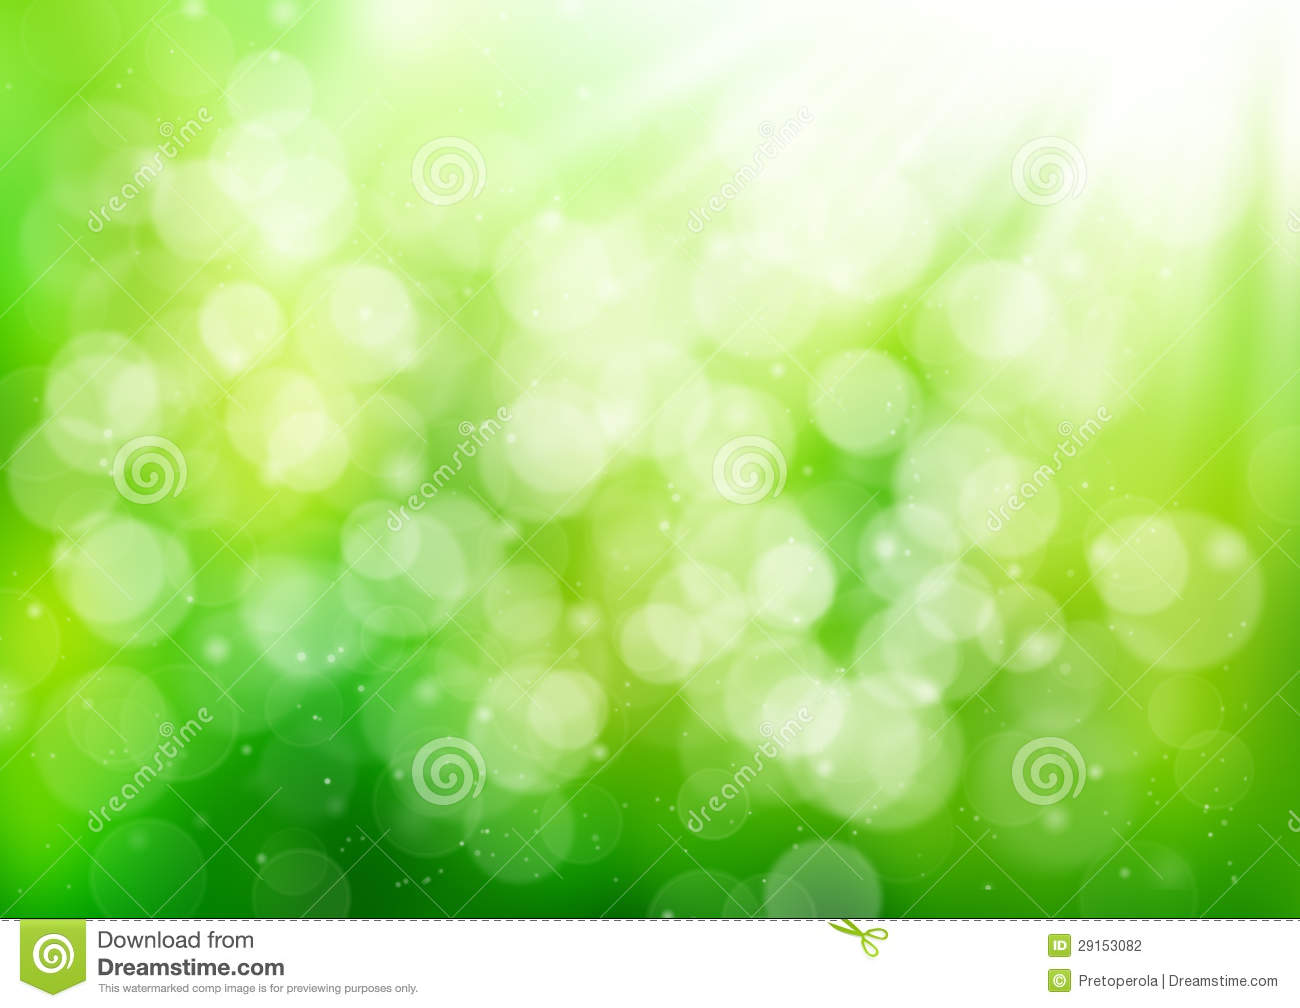 Stock Photo: Abstract green nature background. Image: